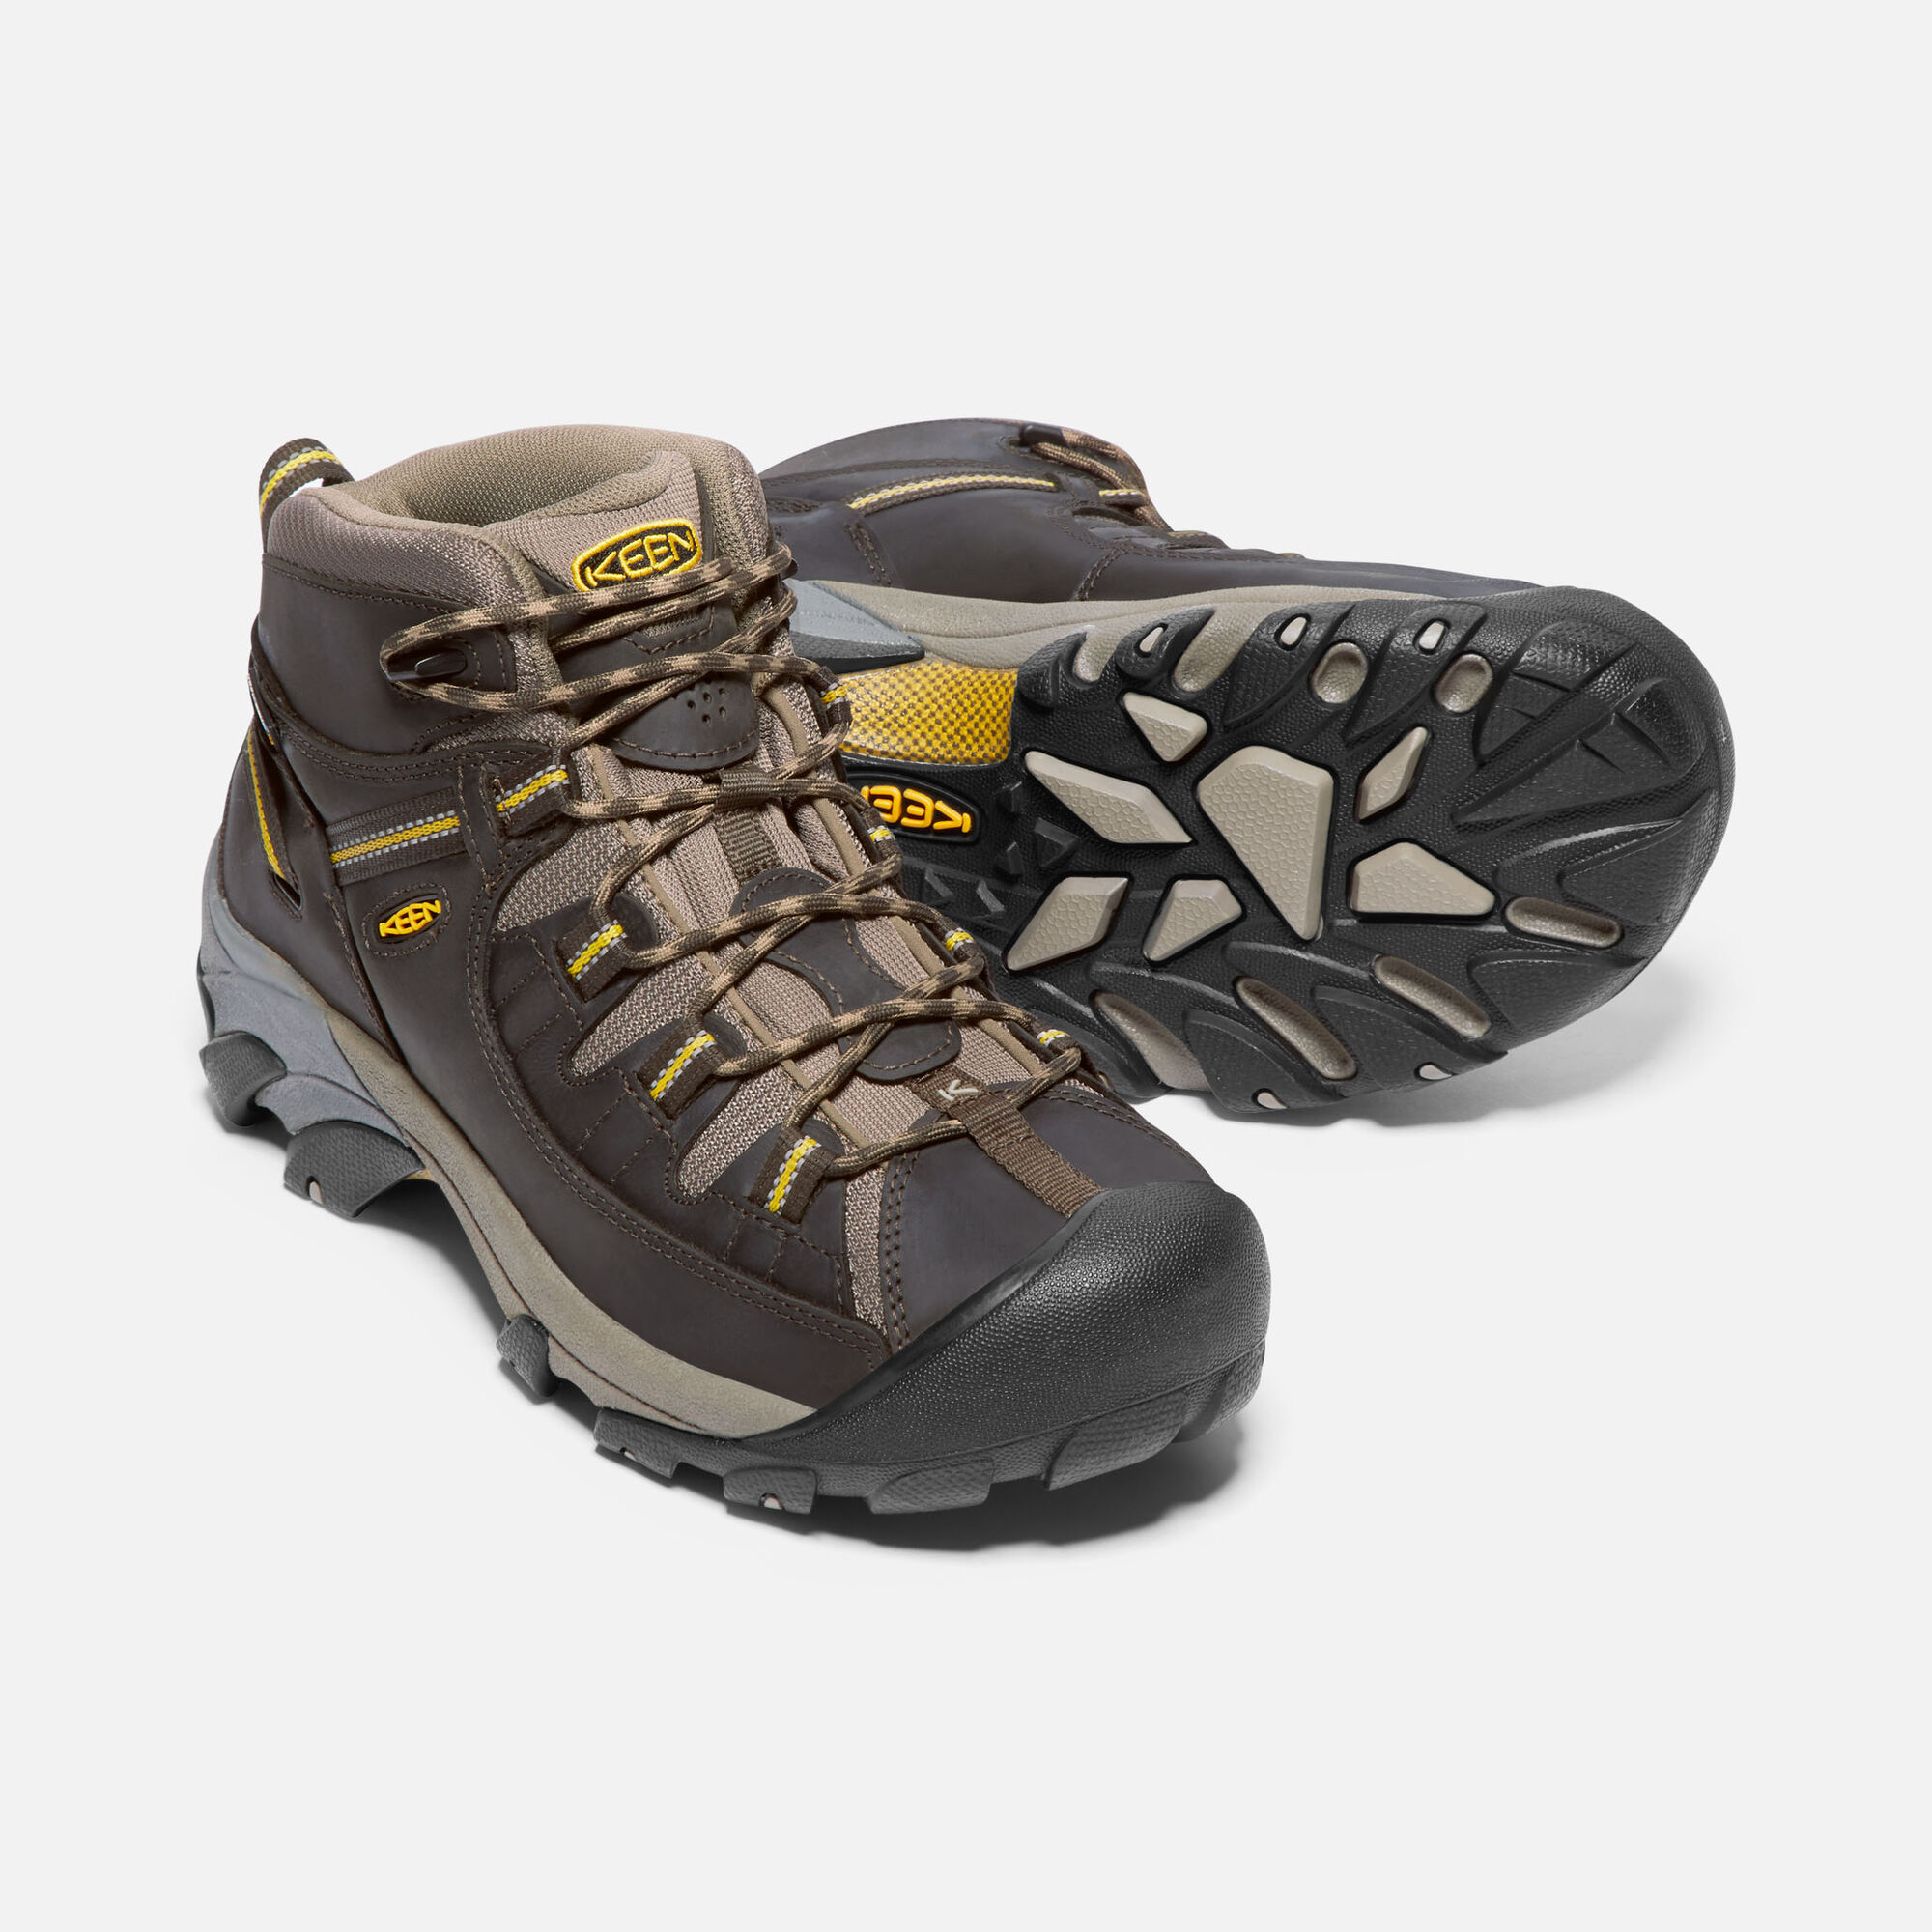 63e12325116 Men s Targhee II Waterproof Mid Wide in Black Olive Yellow - small view.